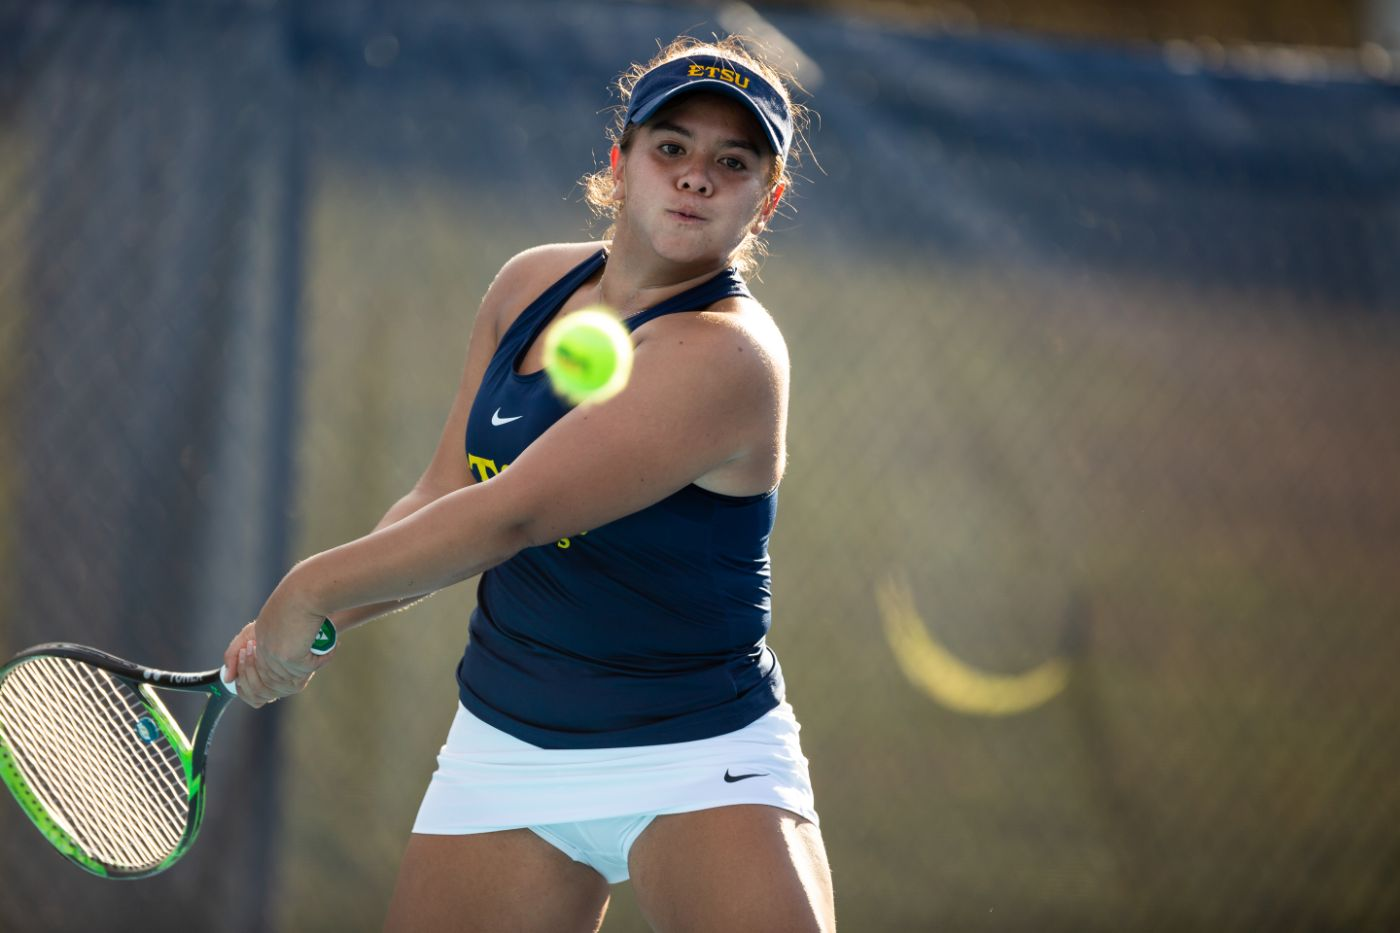 Women's tennis defeated by No. 29 Tennessee, 4-0